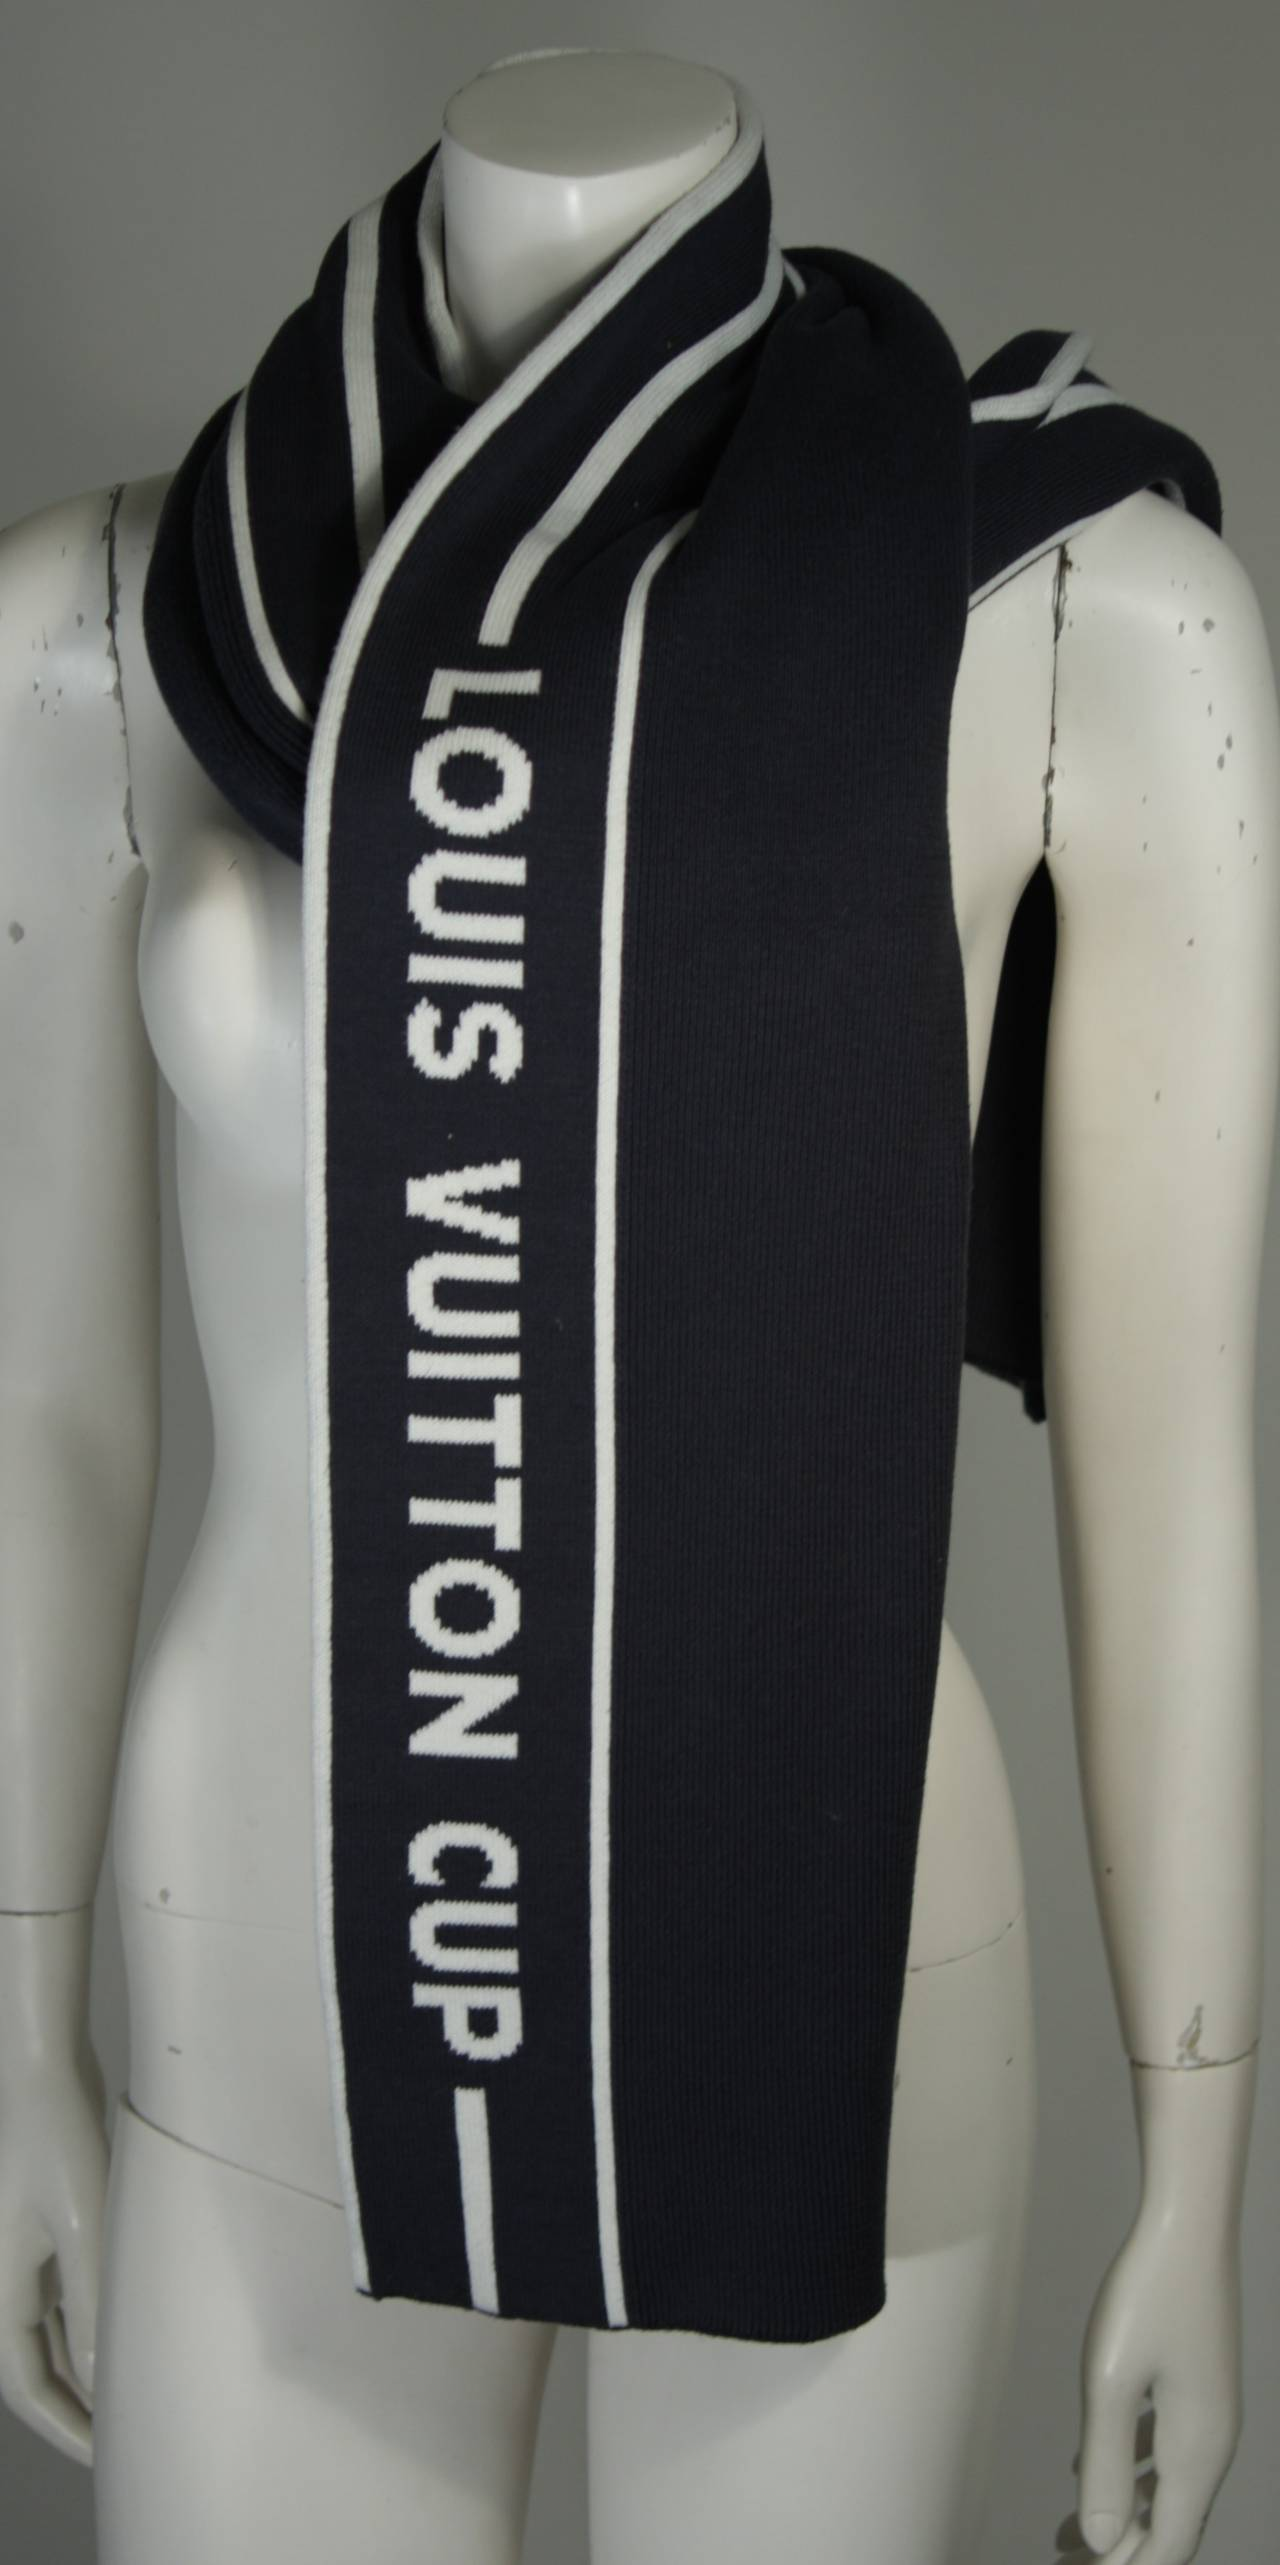 This Louis Vuitton cup scarf is composed of a thick blue cashmere 15% and  85% cotton blend fabric. In excellent condition. Made in Italy. 